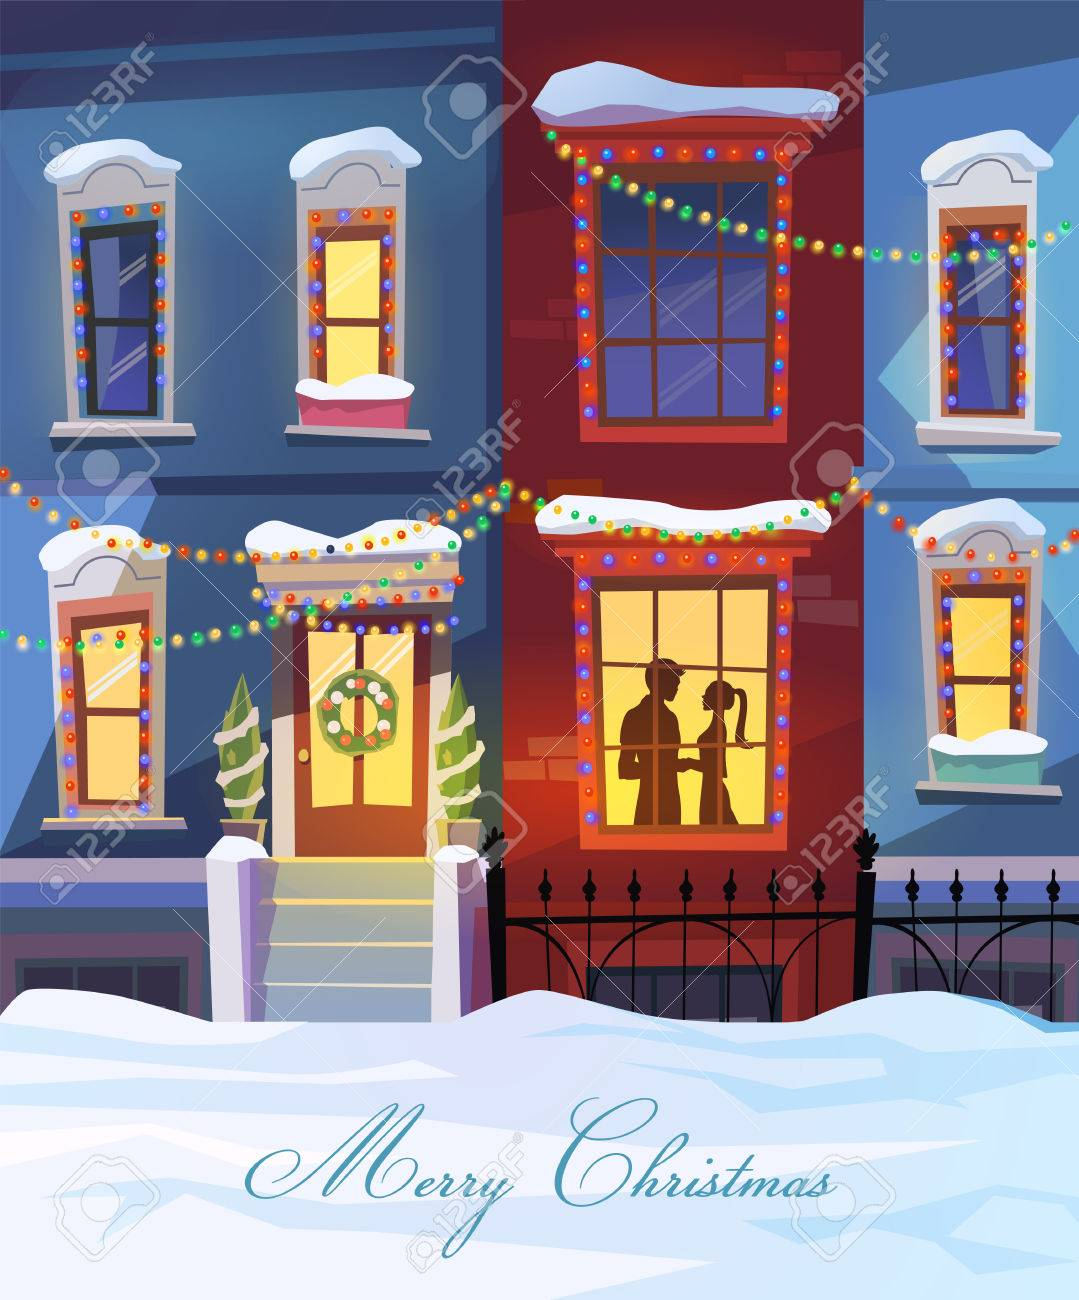 StreetWinter City Street With Christmas Decorated Homes And Couple In Love.  Vector Illustration. Can